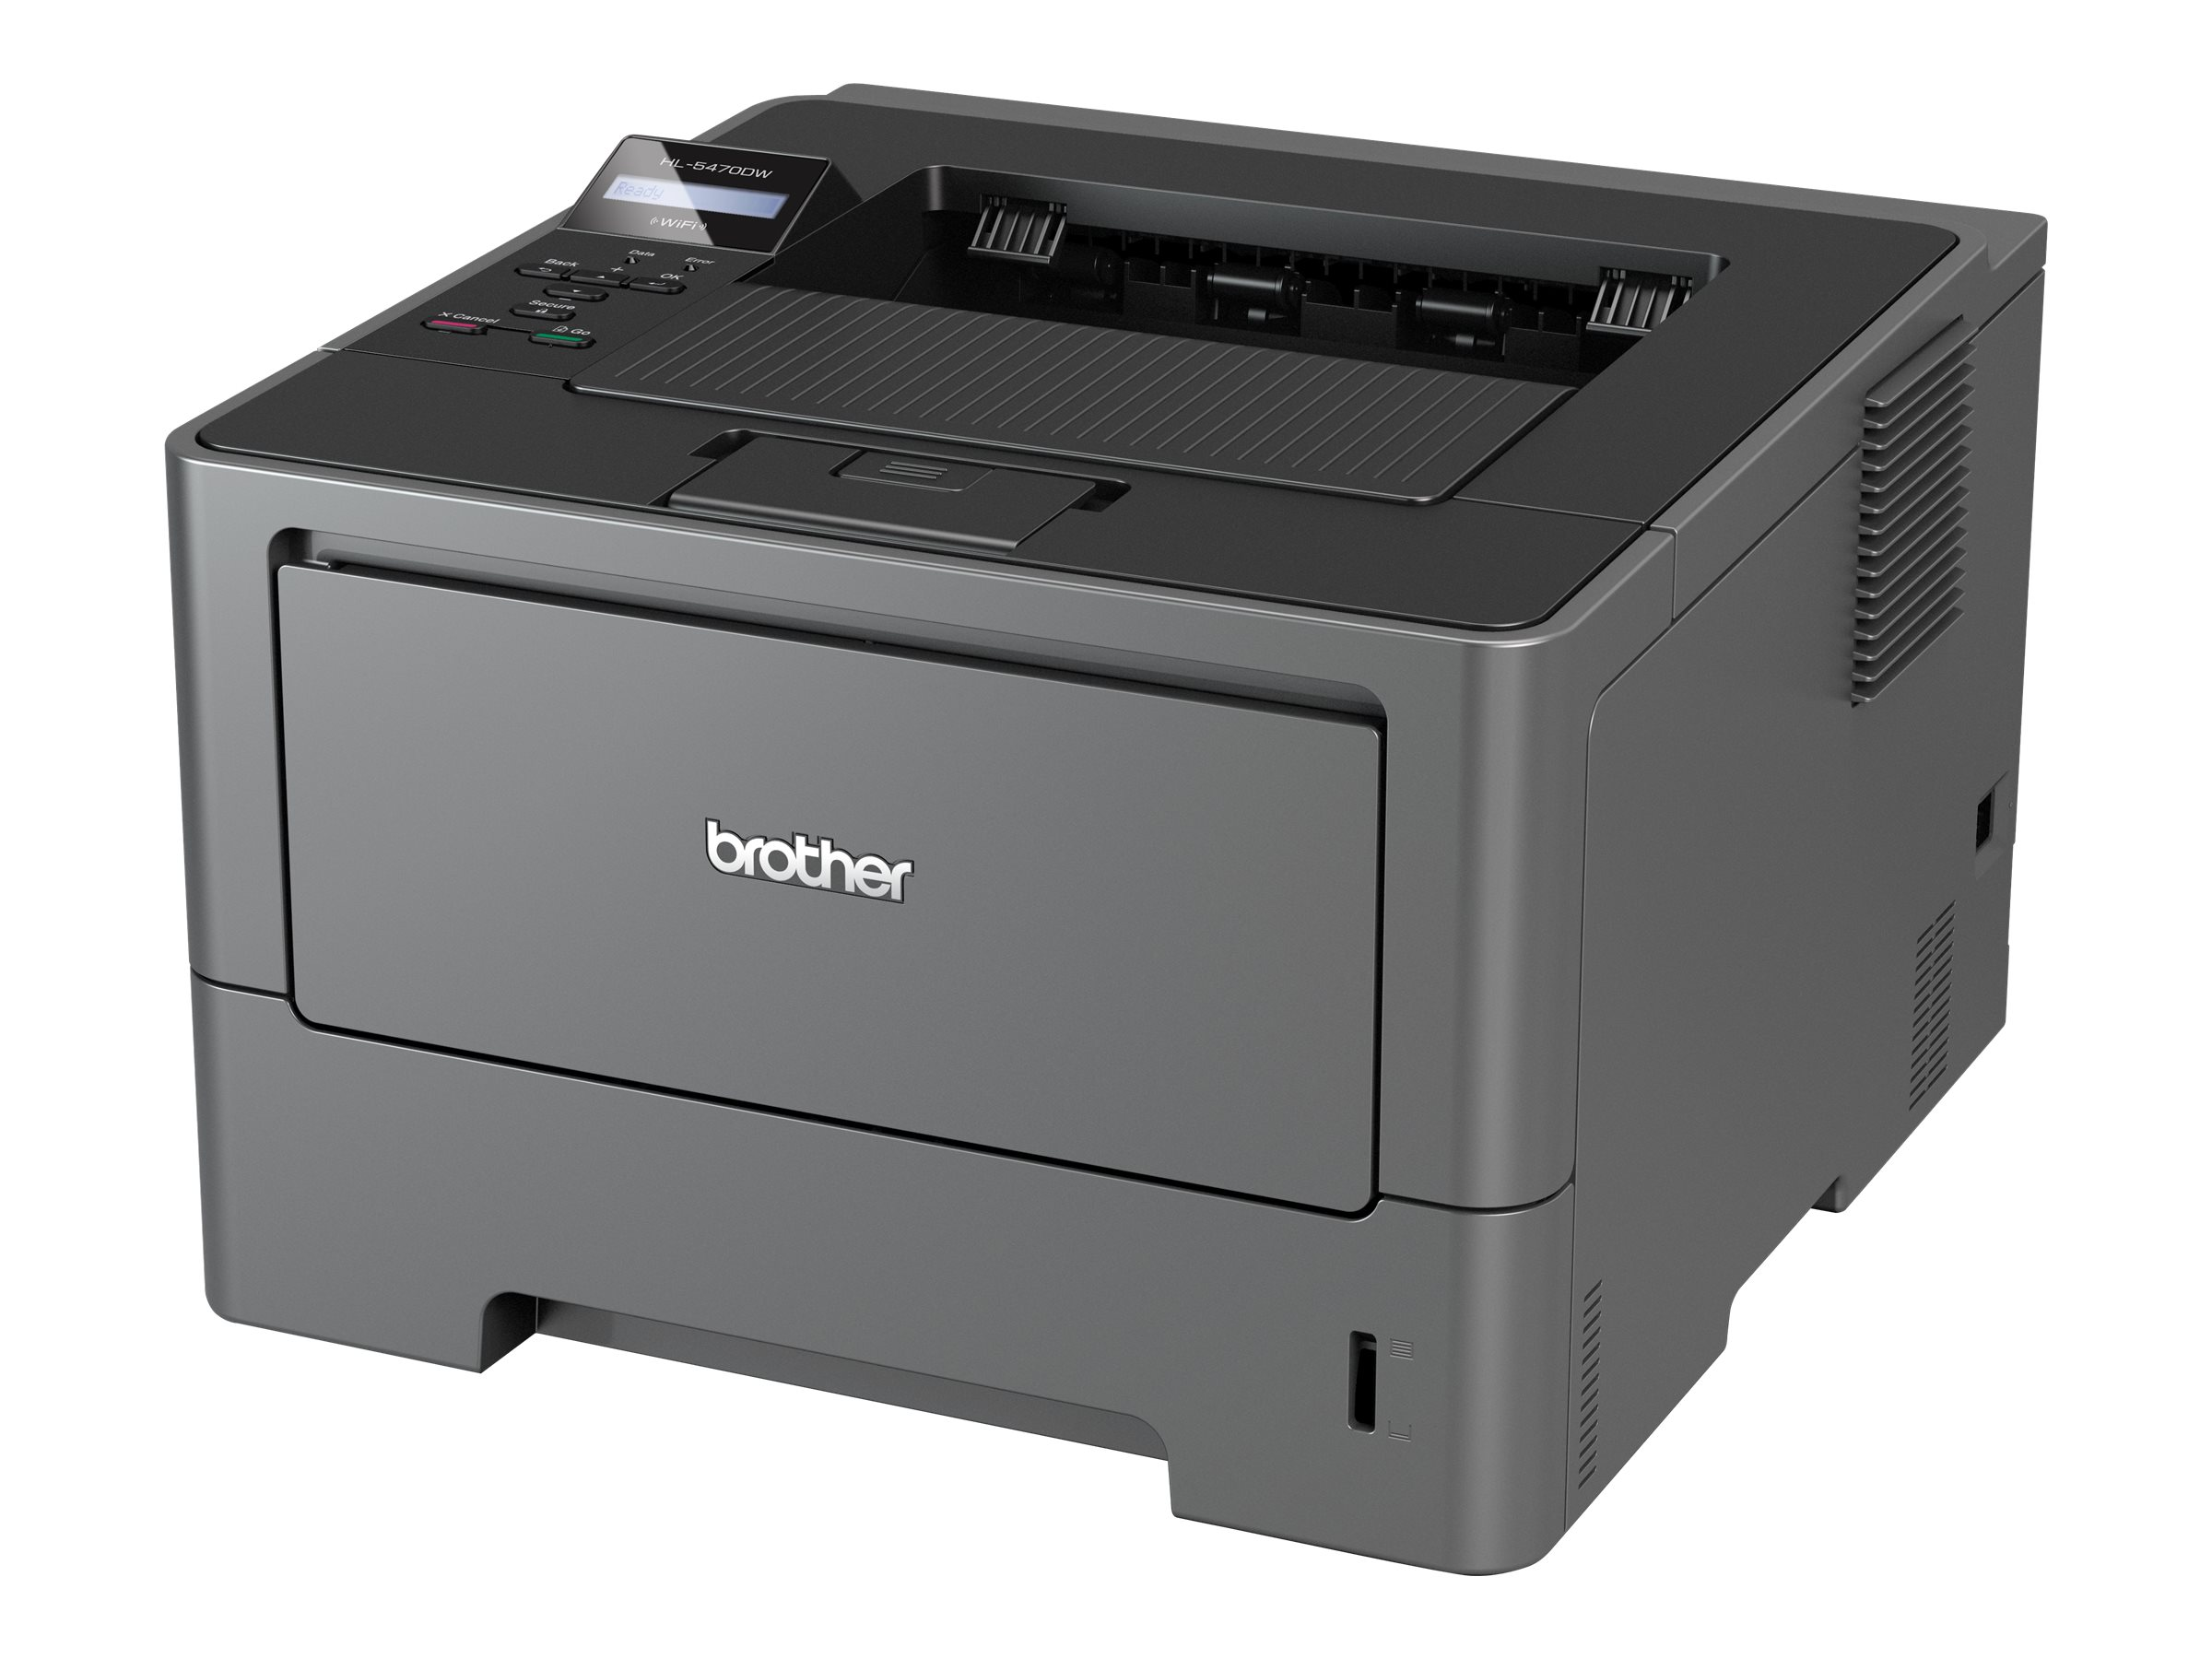 Brother HL-5470DWT High-Speed Laser Printer, HL5470DWT, 14525852, Printers - Laser & LED (monochrome)